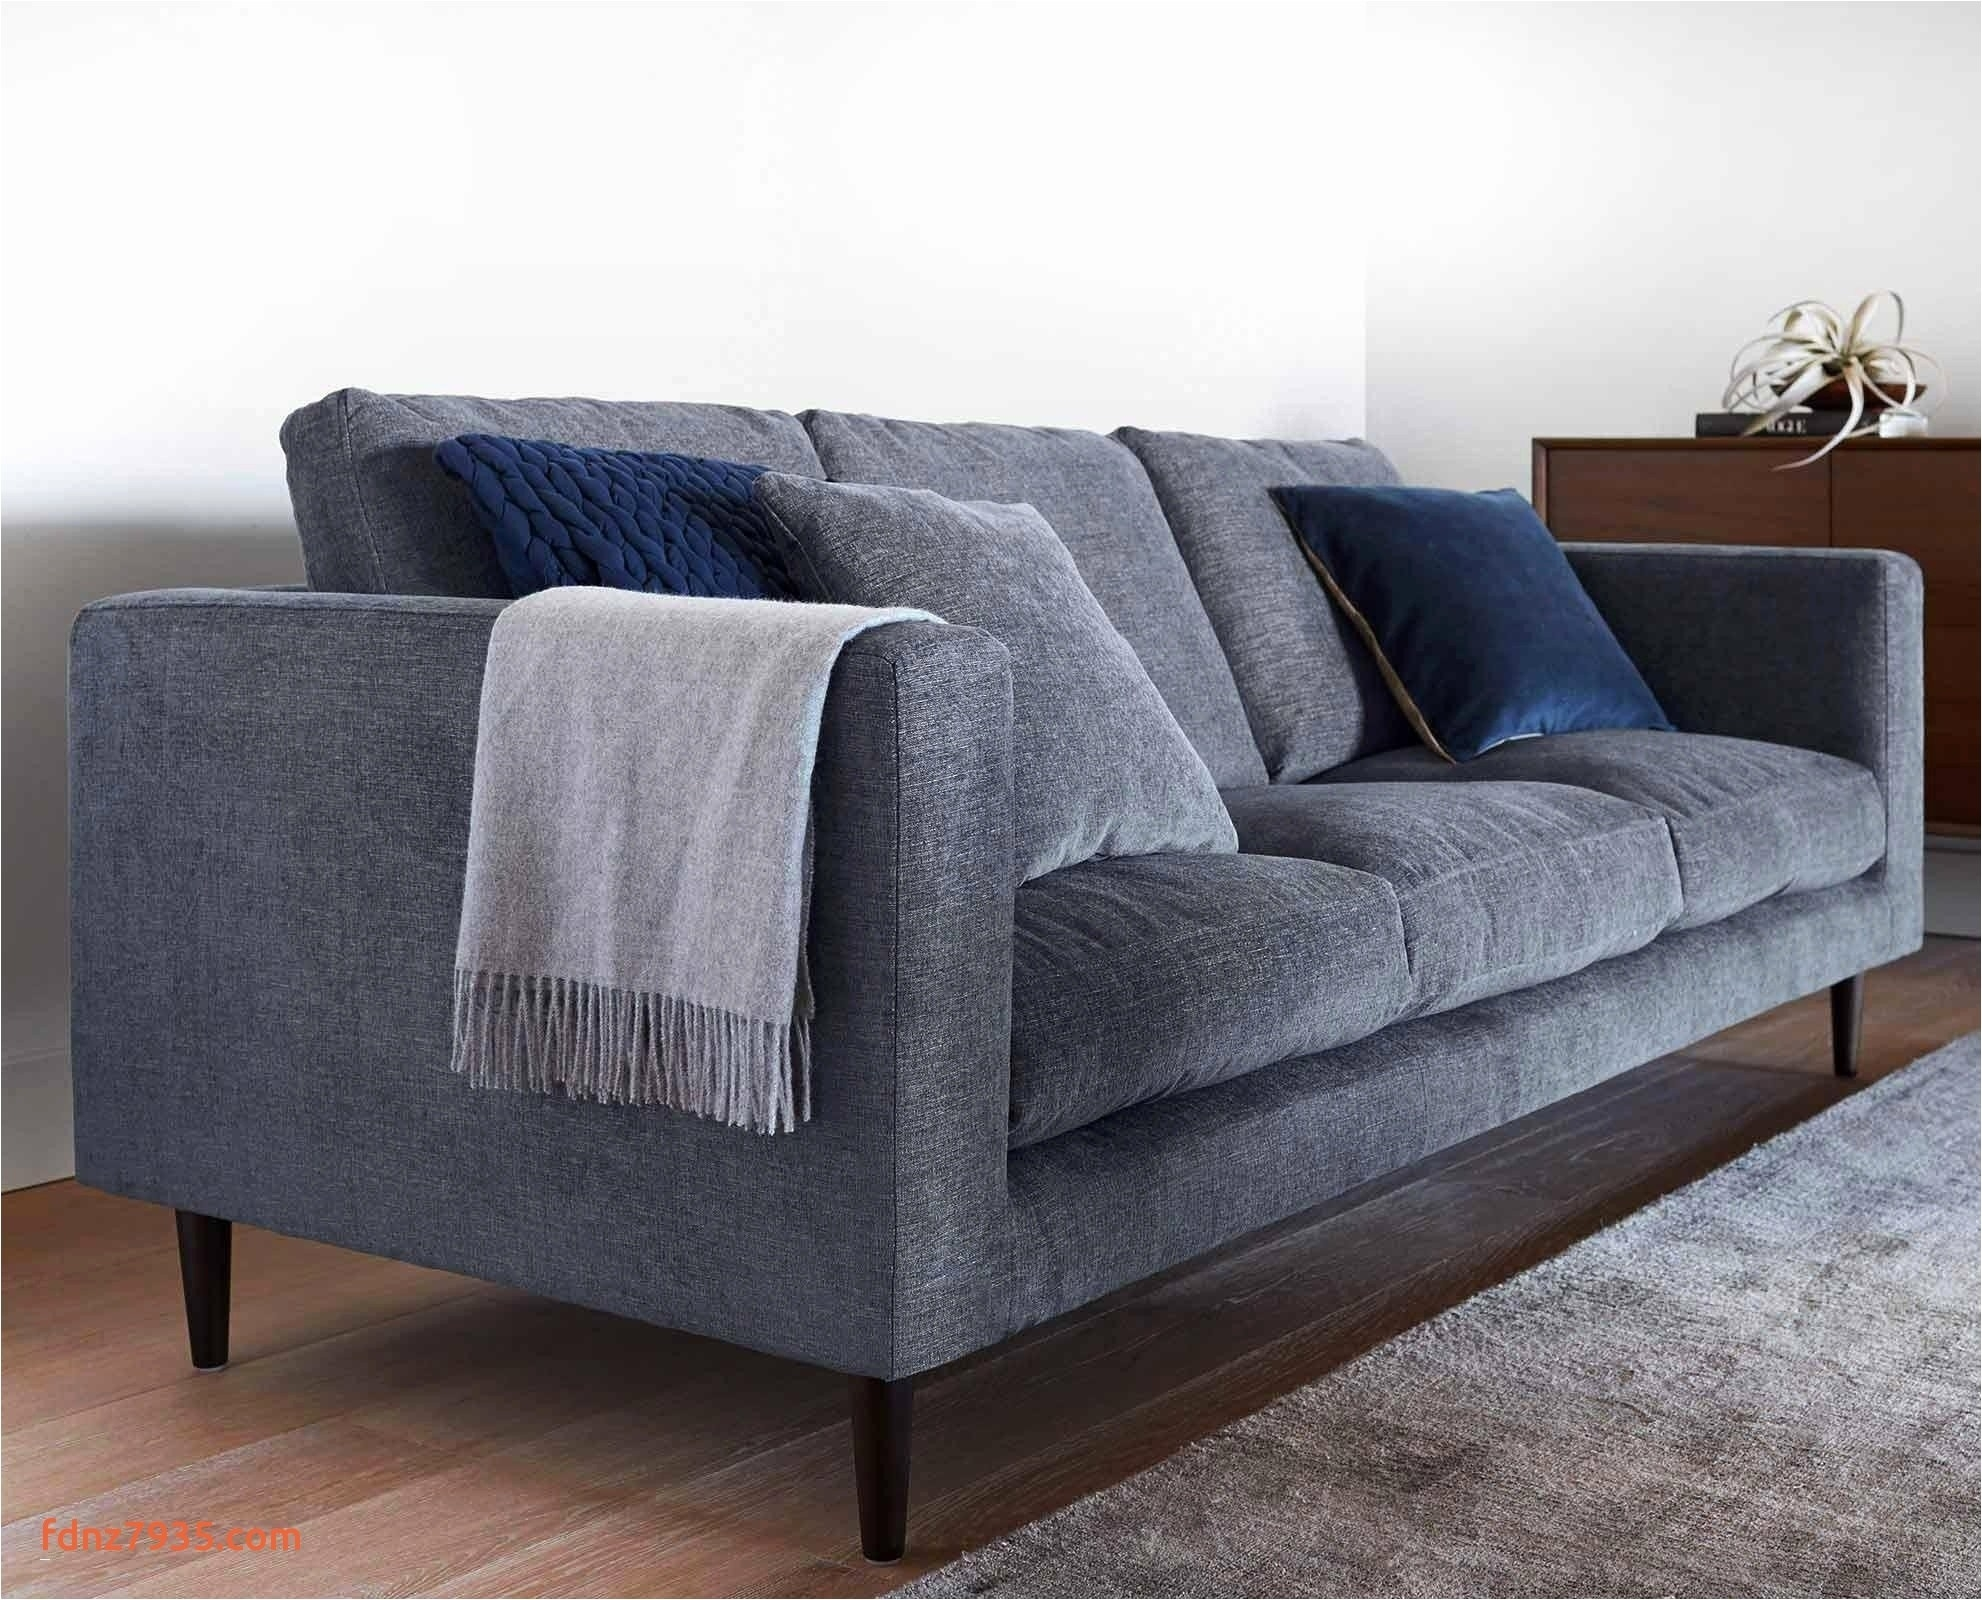 Sleeper Sofa With Chaise Storage | Thesofasite.co inside Taren Reversible Sofa/chaise Sleeper Sectionals With Storage Ottoman (Image 22 of 30)